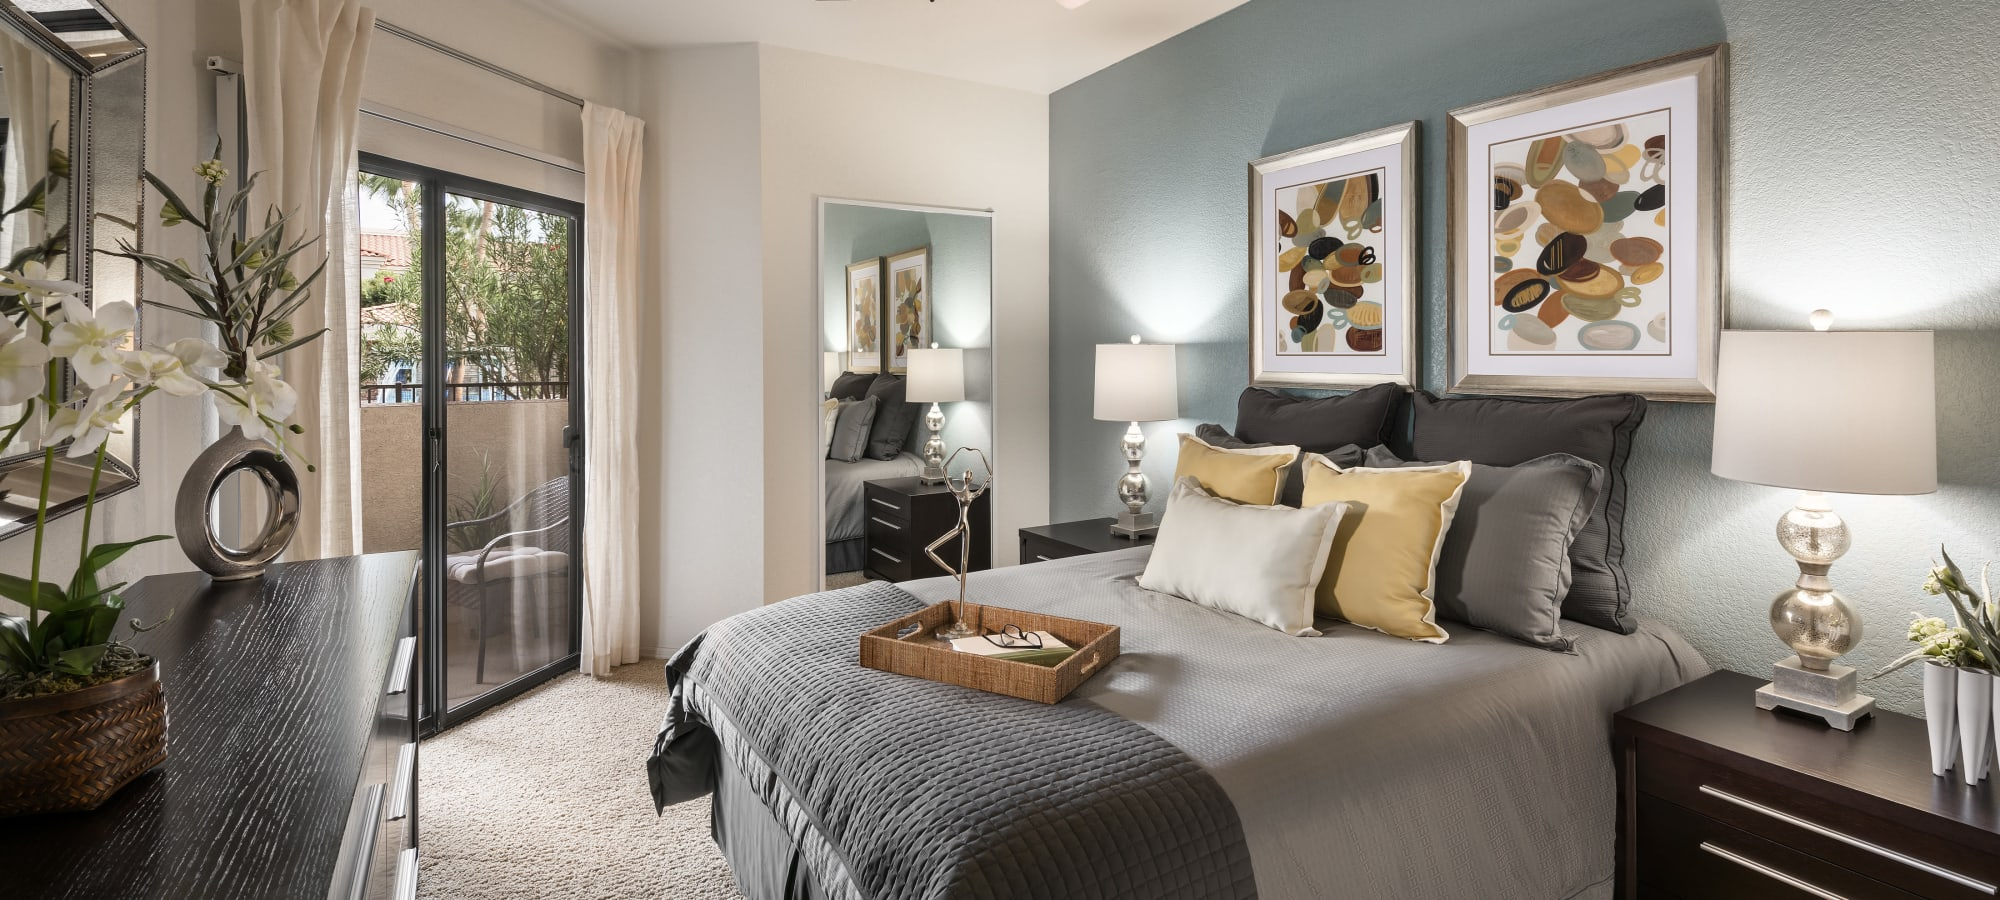 Luxury bedroom at San Prado in Glendale, Arizona